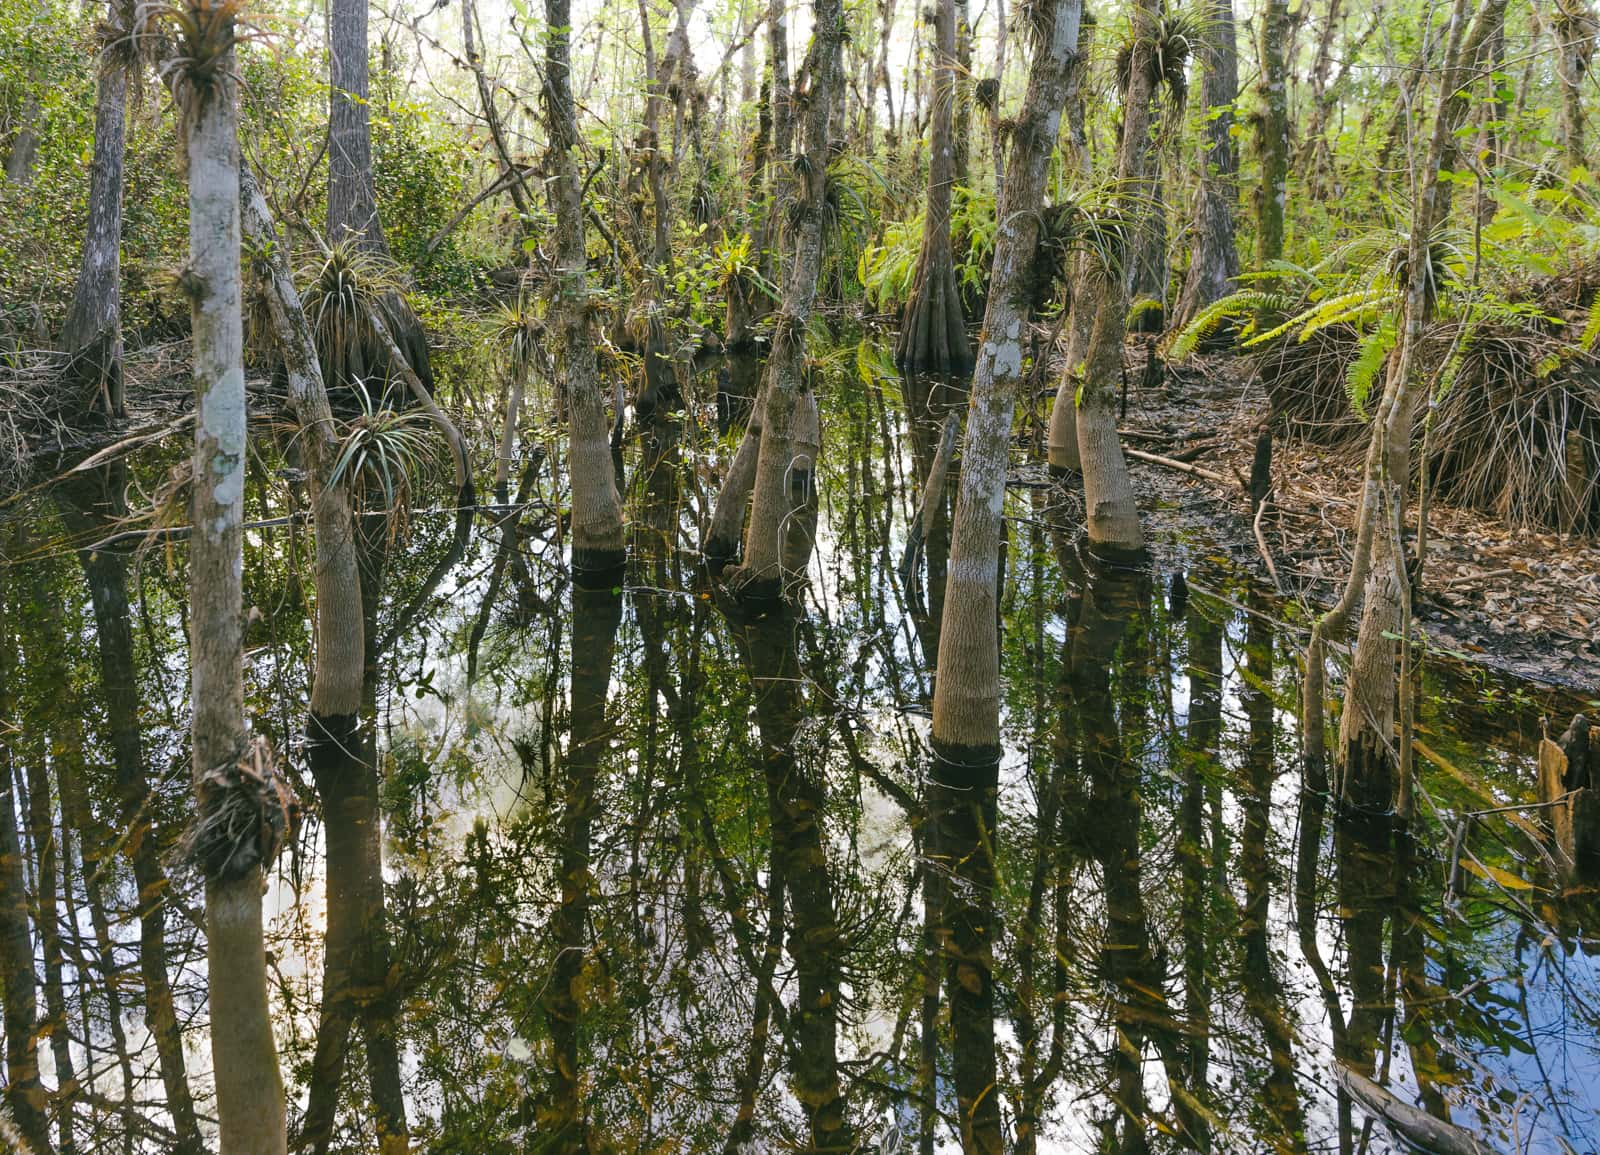 Everglades mangroves swamp